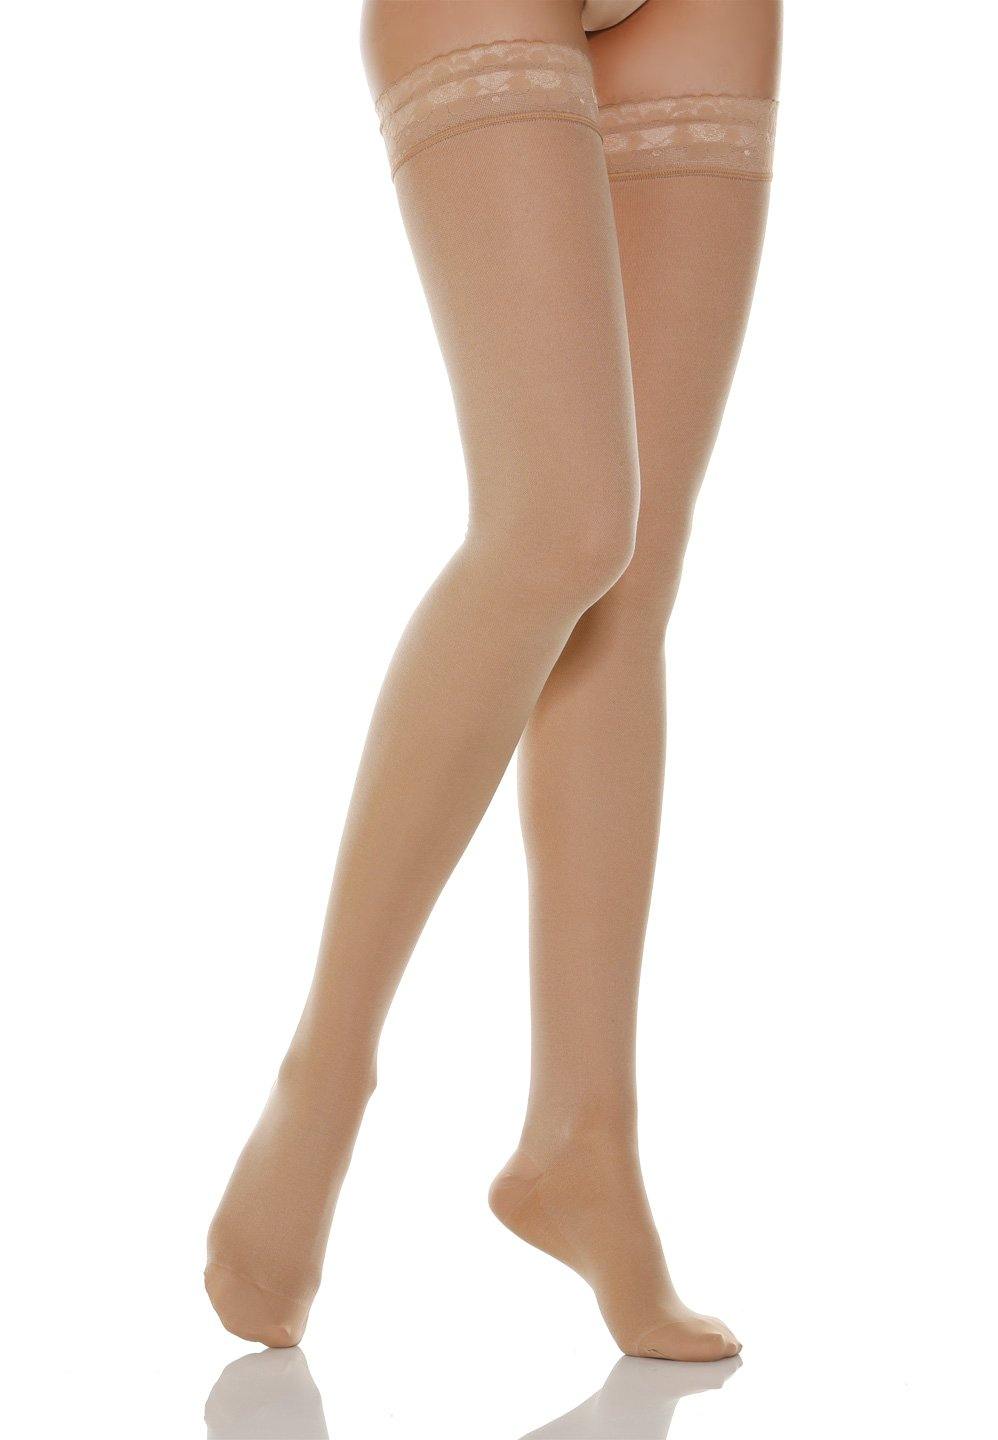 Relaxsan Cotton 870C - cotton support Thigh High W/Lace stockings 15-20 mmHg Calze G.T. S.r.l.